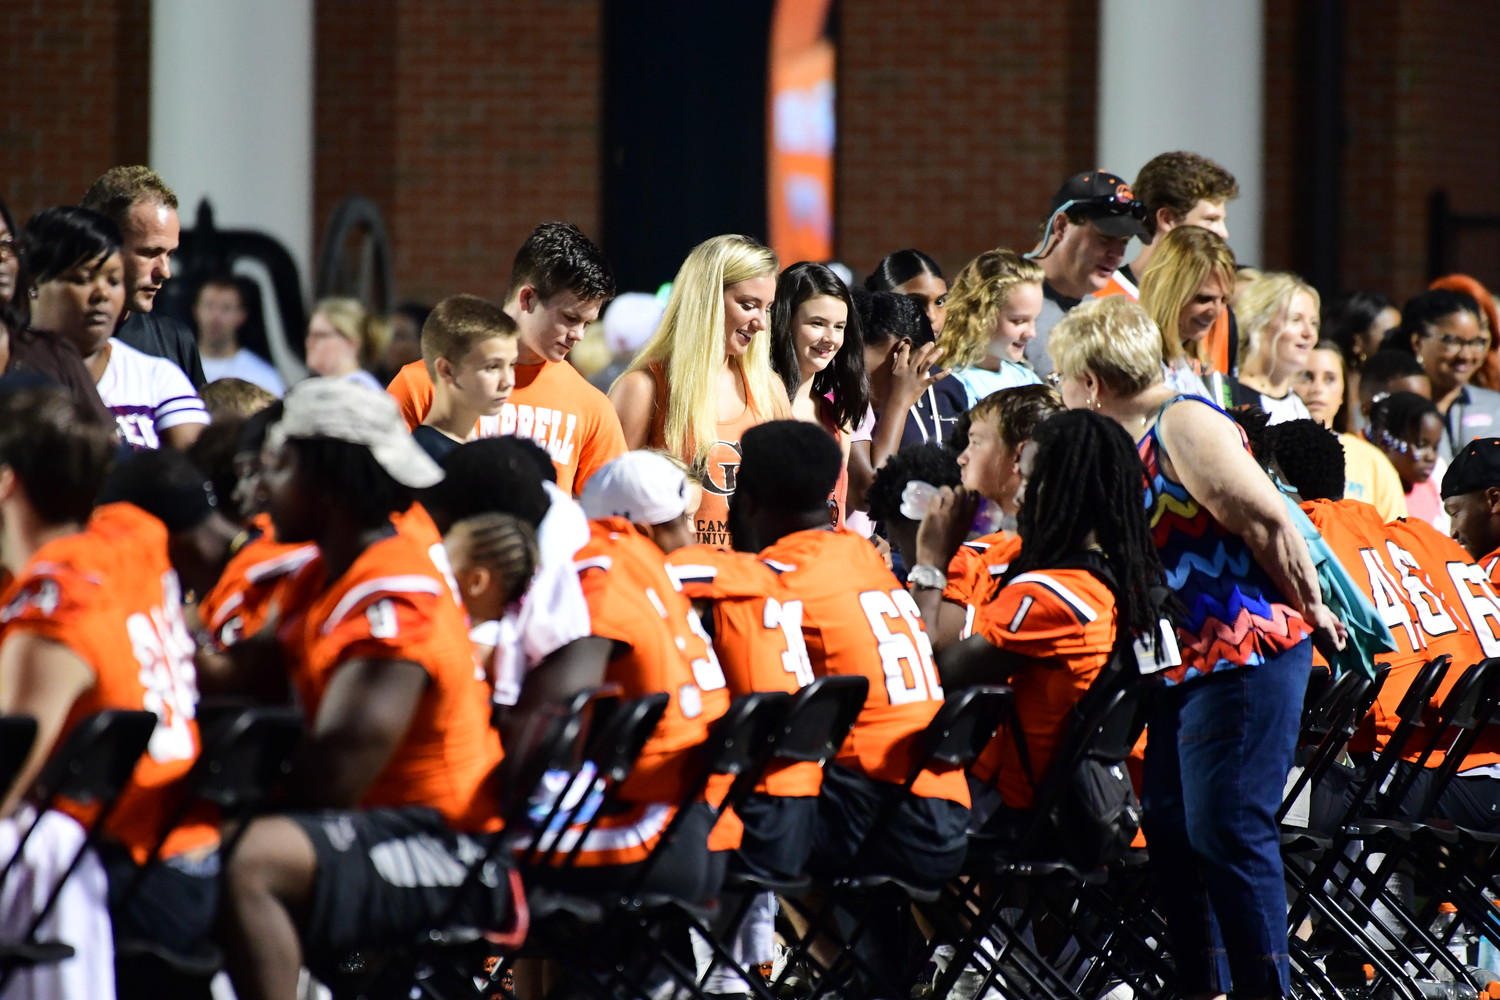 Campbell University football kicks off its 2018 schedule on Thursday, Aug. 30, hosting Chowan at Barker-Lane Stadium. The Camels open Big South play October 20 at Monmouth. The program held its annual Fan Fest on Saturday at Barker Lane Stadium.